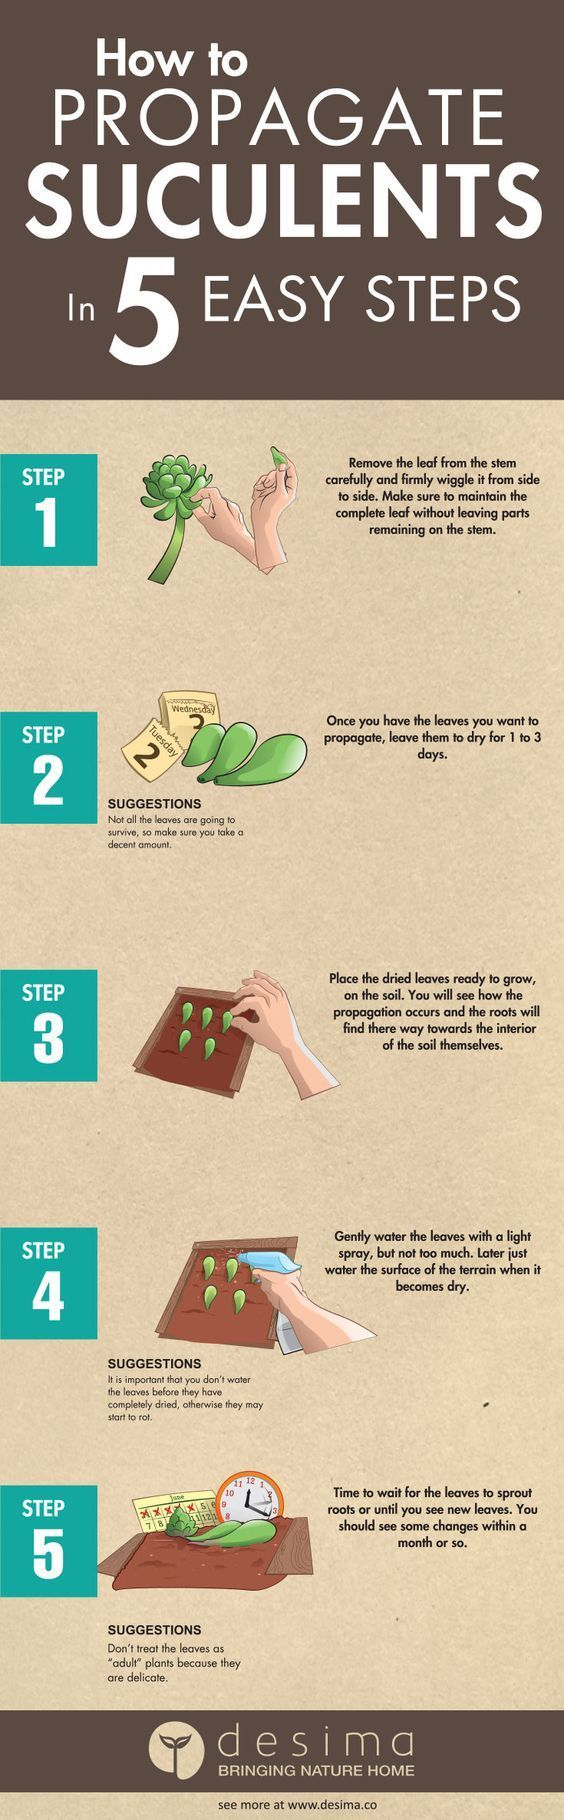 How to Propagate Succulents in 5 Easy Steps #Flowers